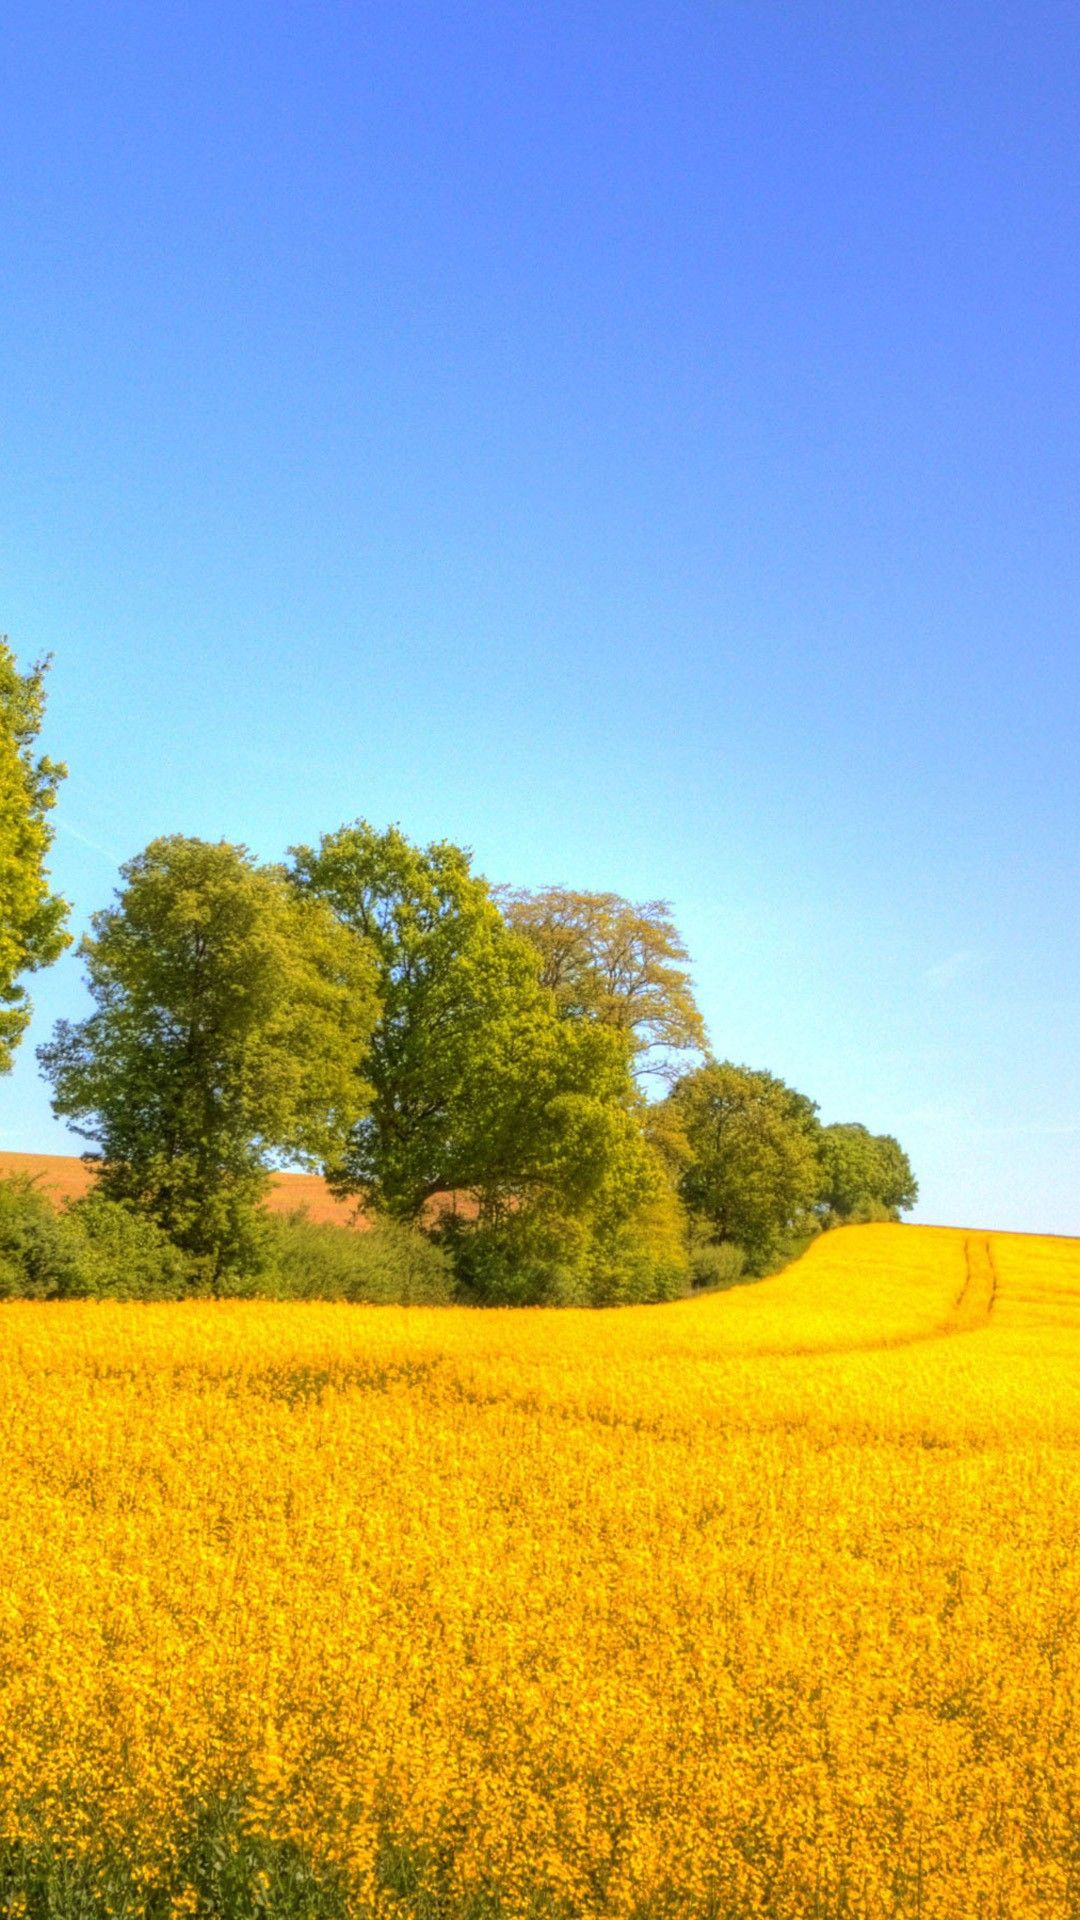 Wallpaper iphone hujan - Nice Rapeseed Golden Field Iphone 6 Plus Wallpaper